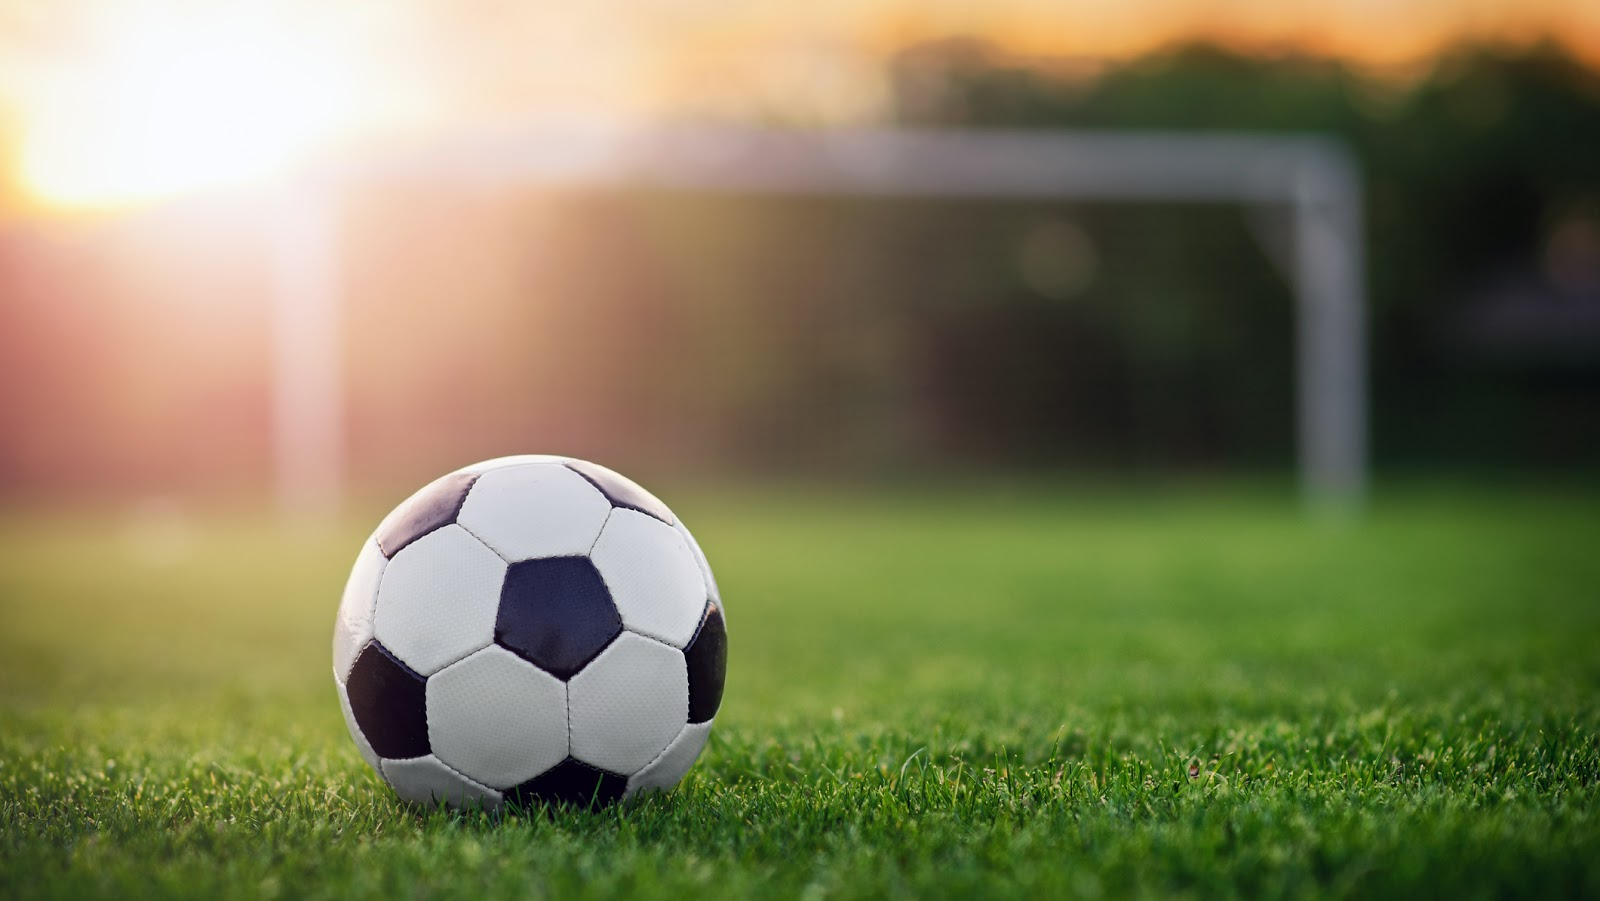 Discover Apps to Watch Football Online on Mobile